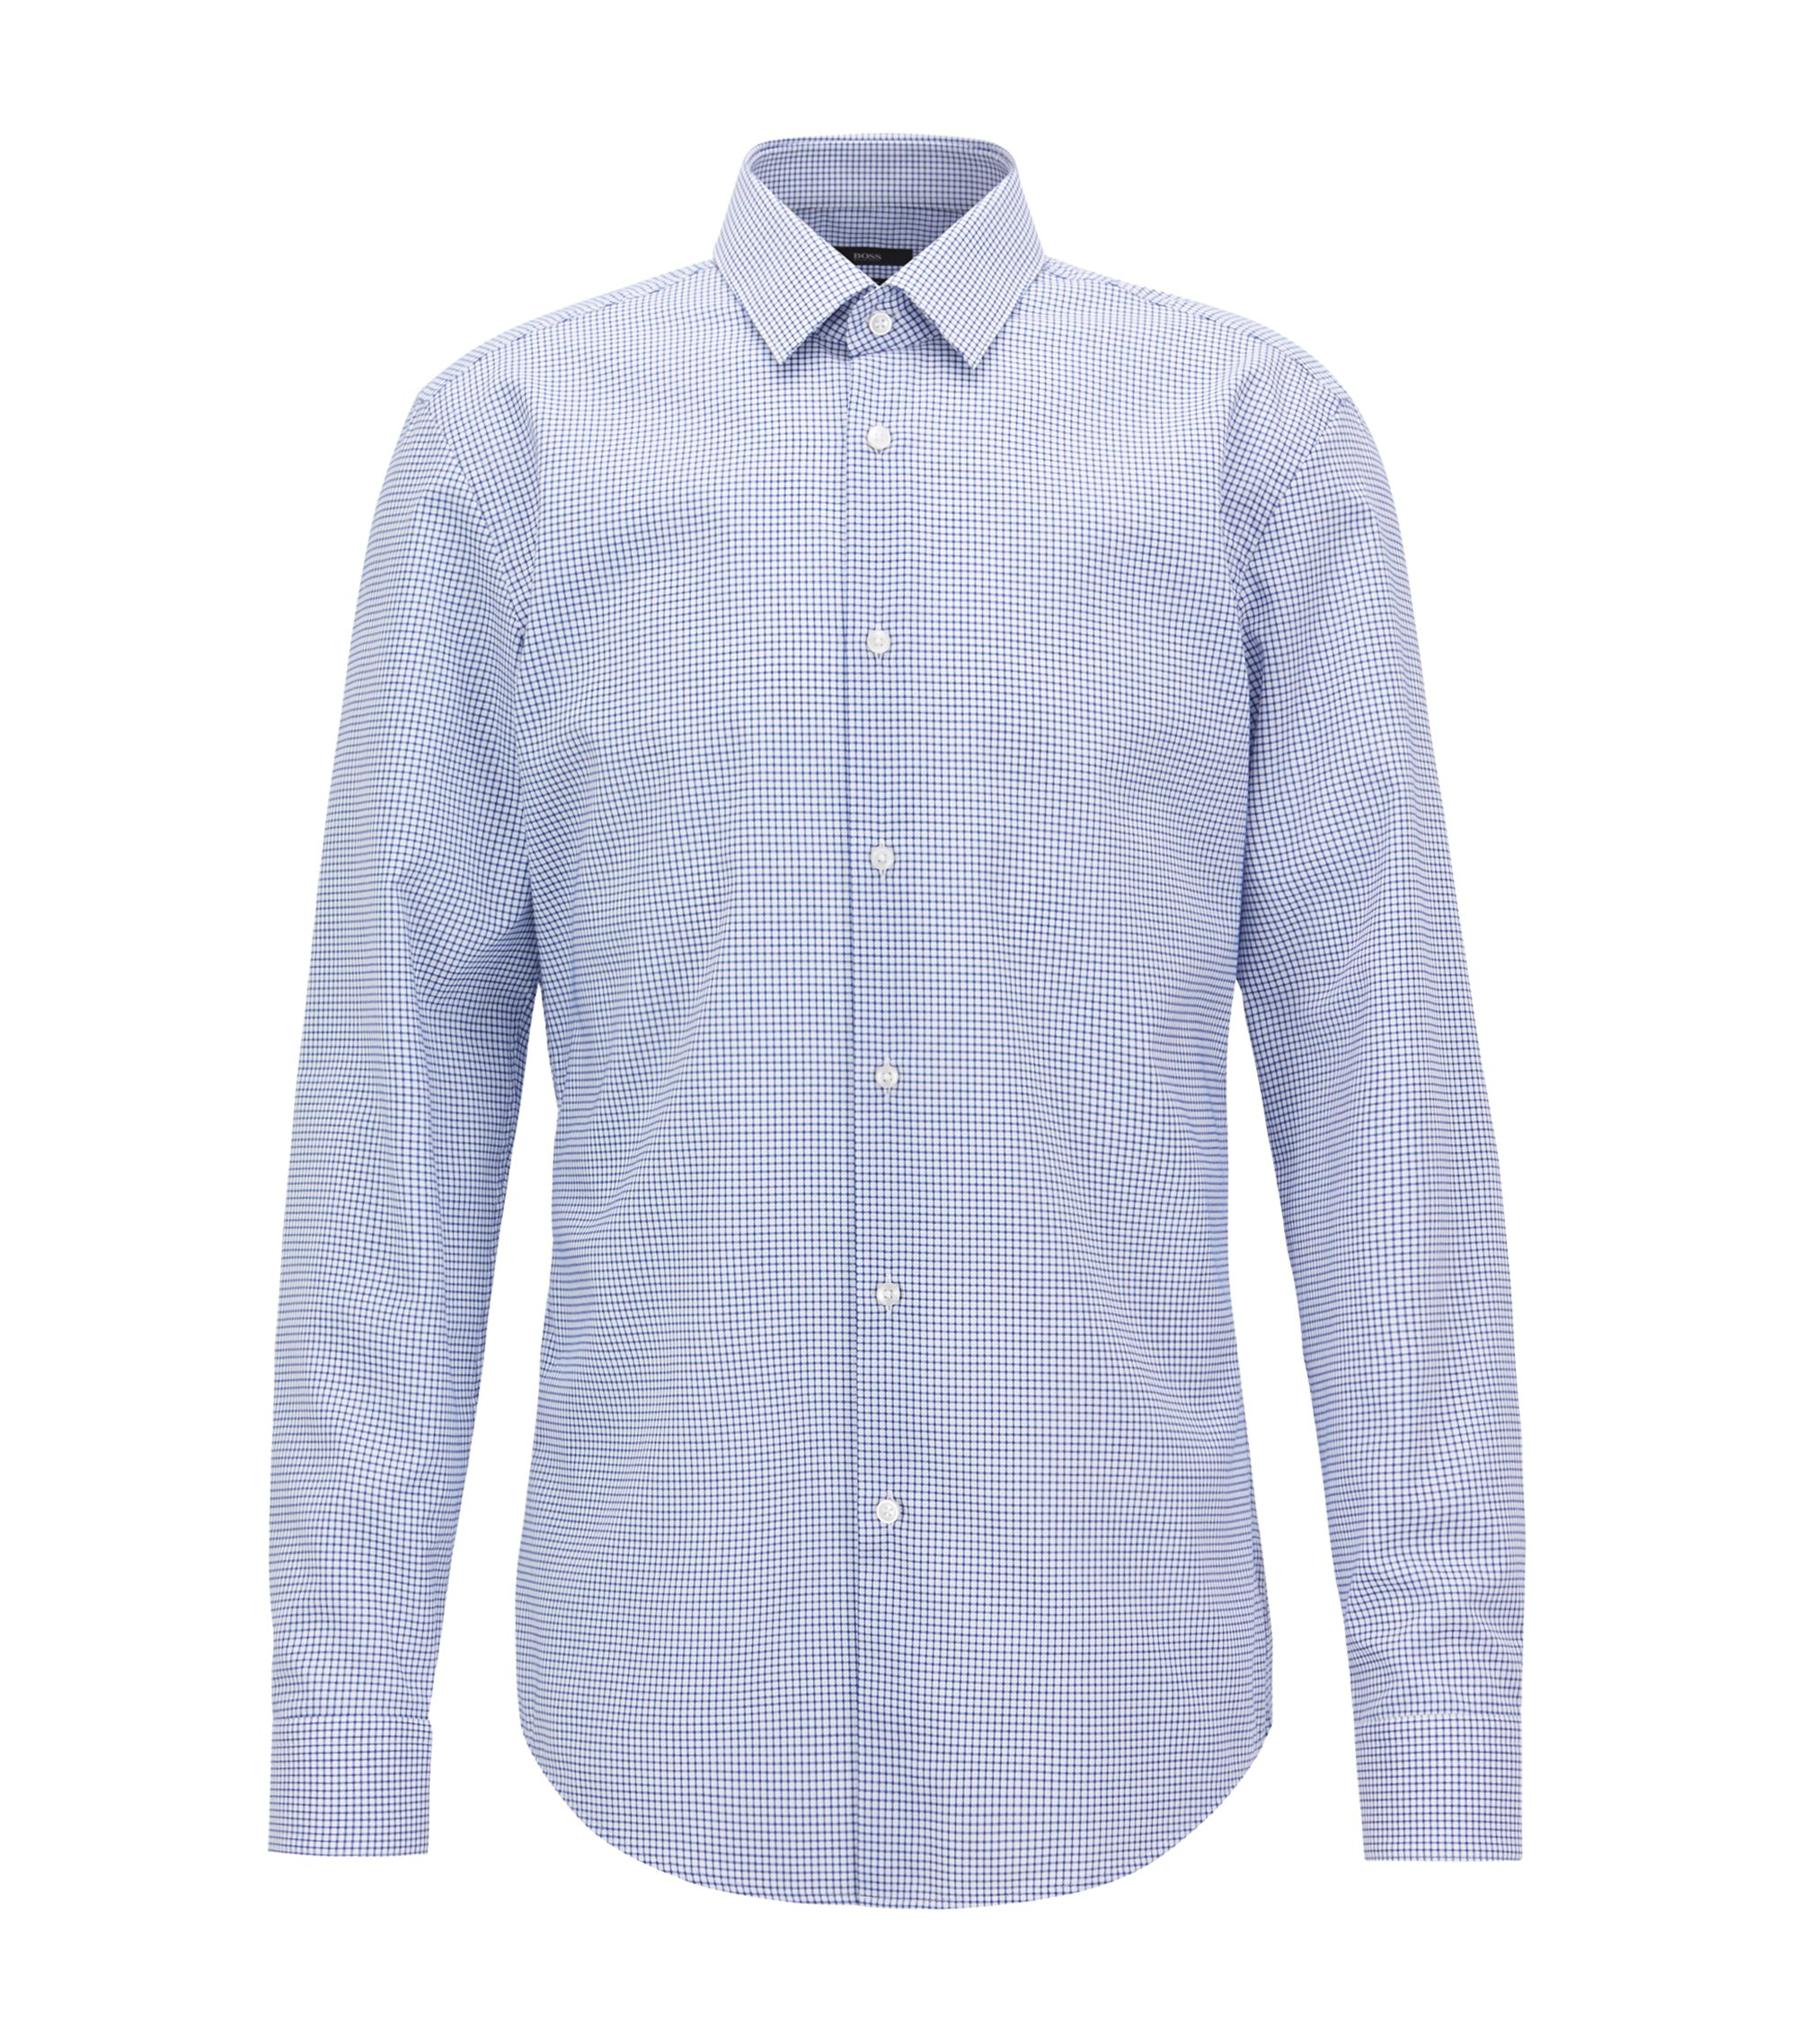 Camicia a quadri slim fit in popeline di cotone facile da stirare, Blu